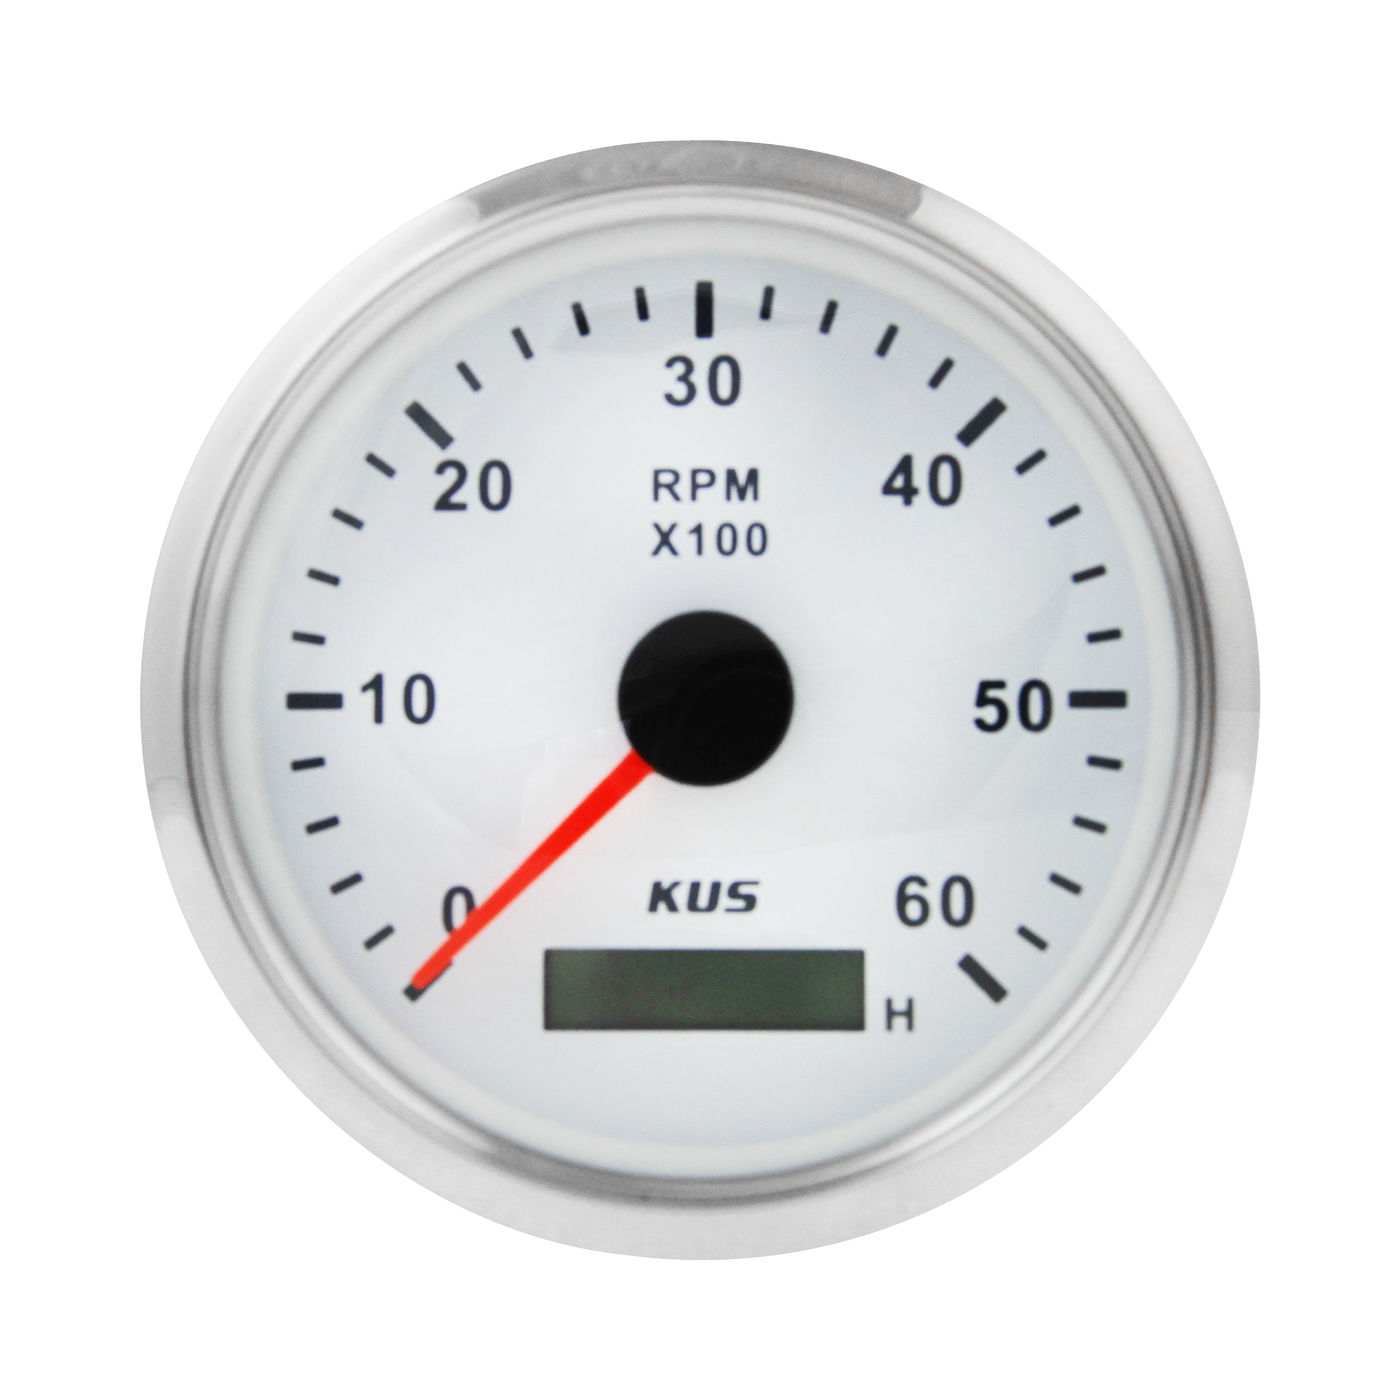 Tachometer 0-6000 Rev/min With Hour Meter Divider 0.5-250 White Dial, Stainless Steel Bezel. 85mm KY07101